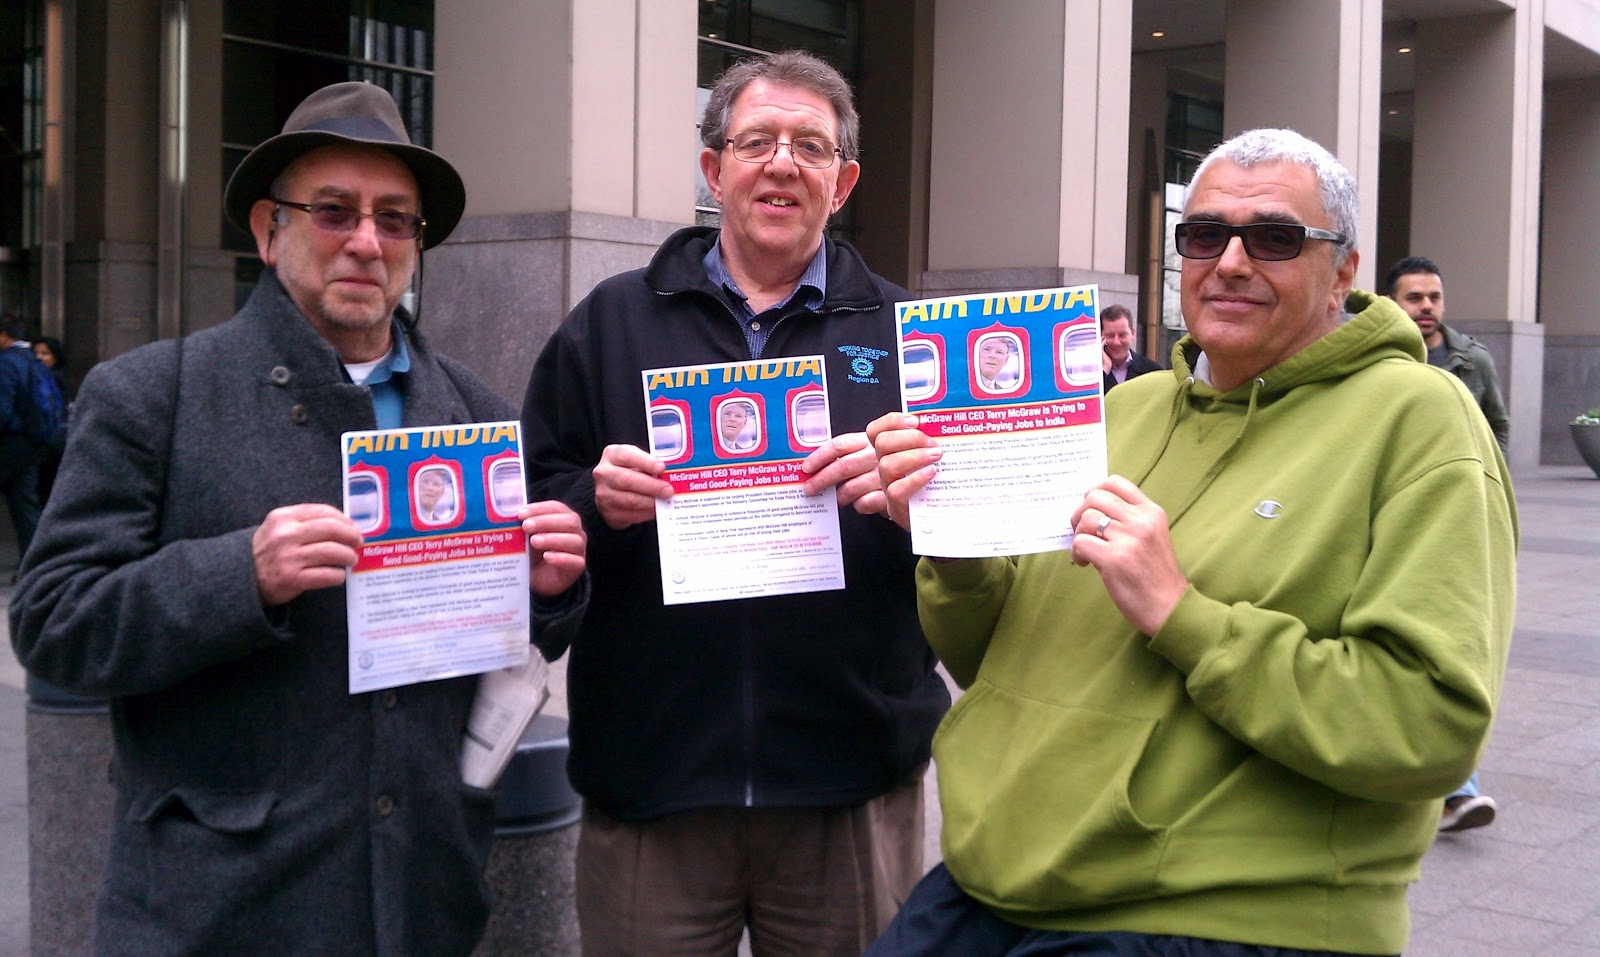 broadcast union news the newspaper guild of new york local 31003 left to right gary schoichet communications director cwa local 1180 larry goldbetter president national writers union uaw local 198